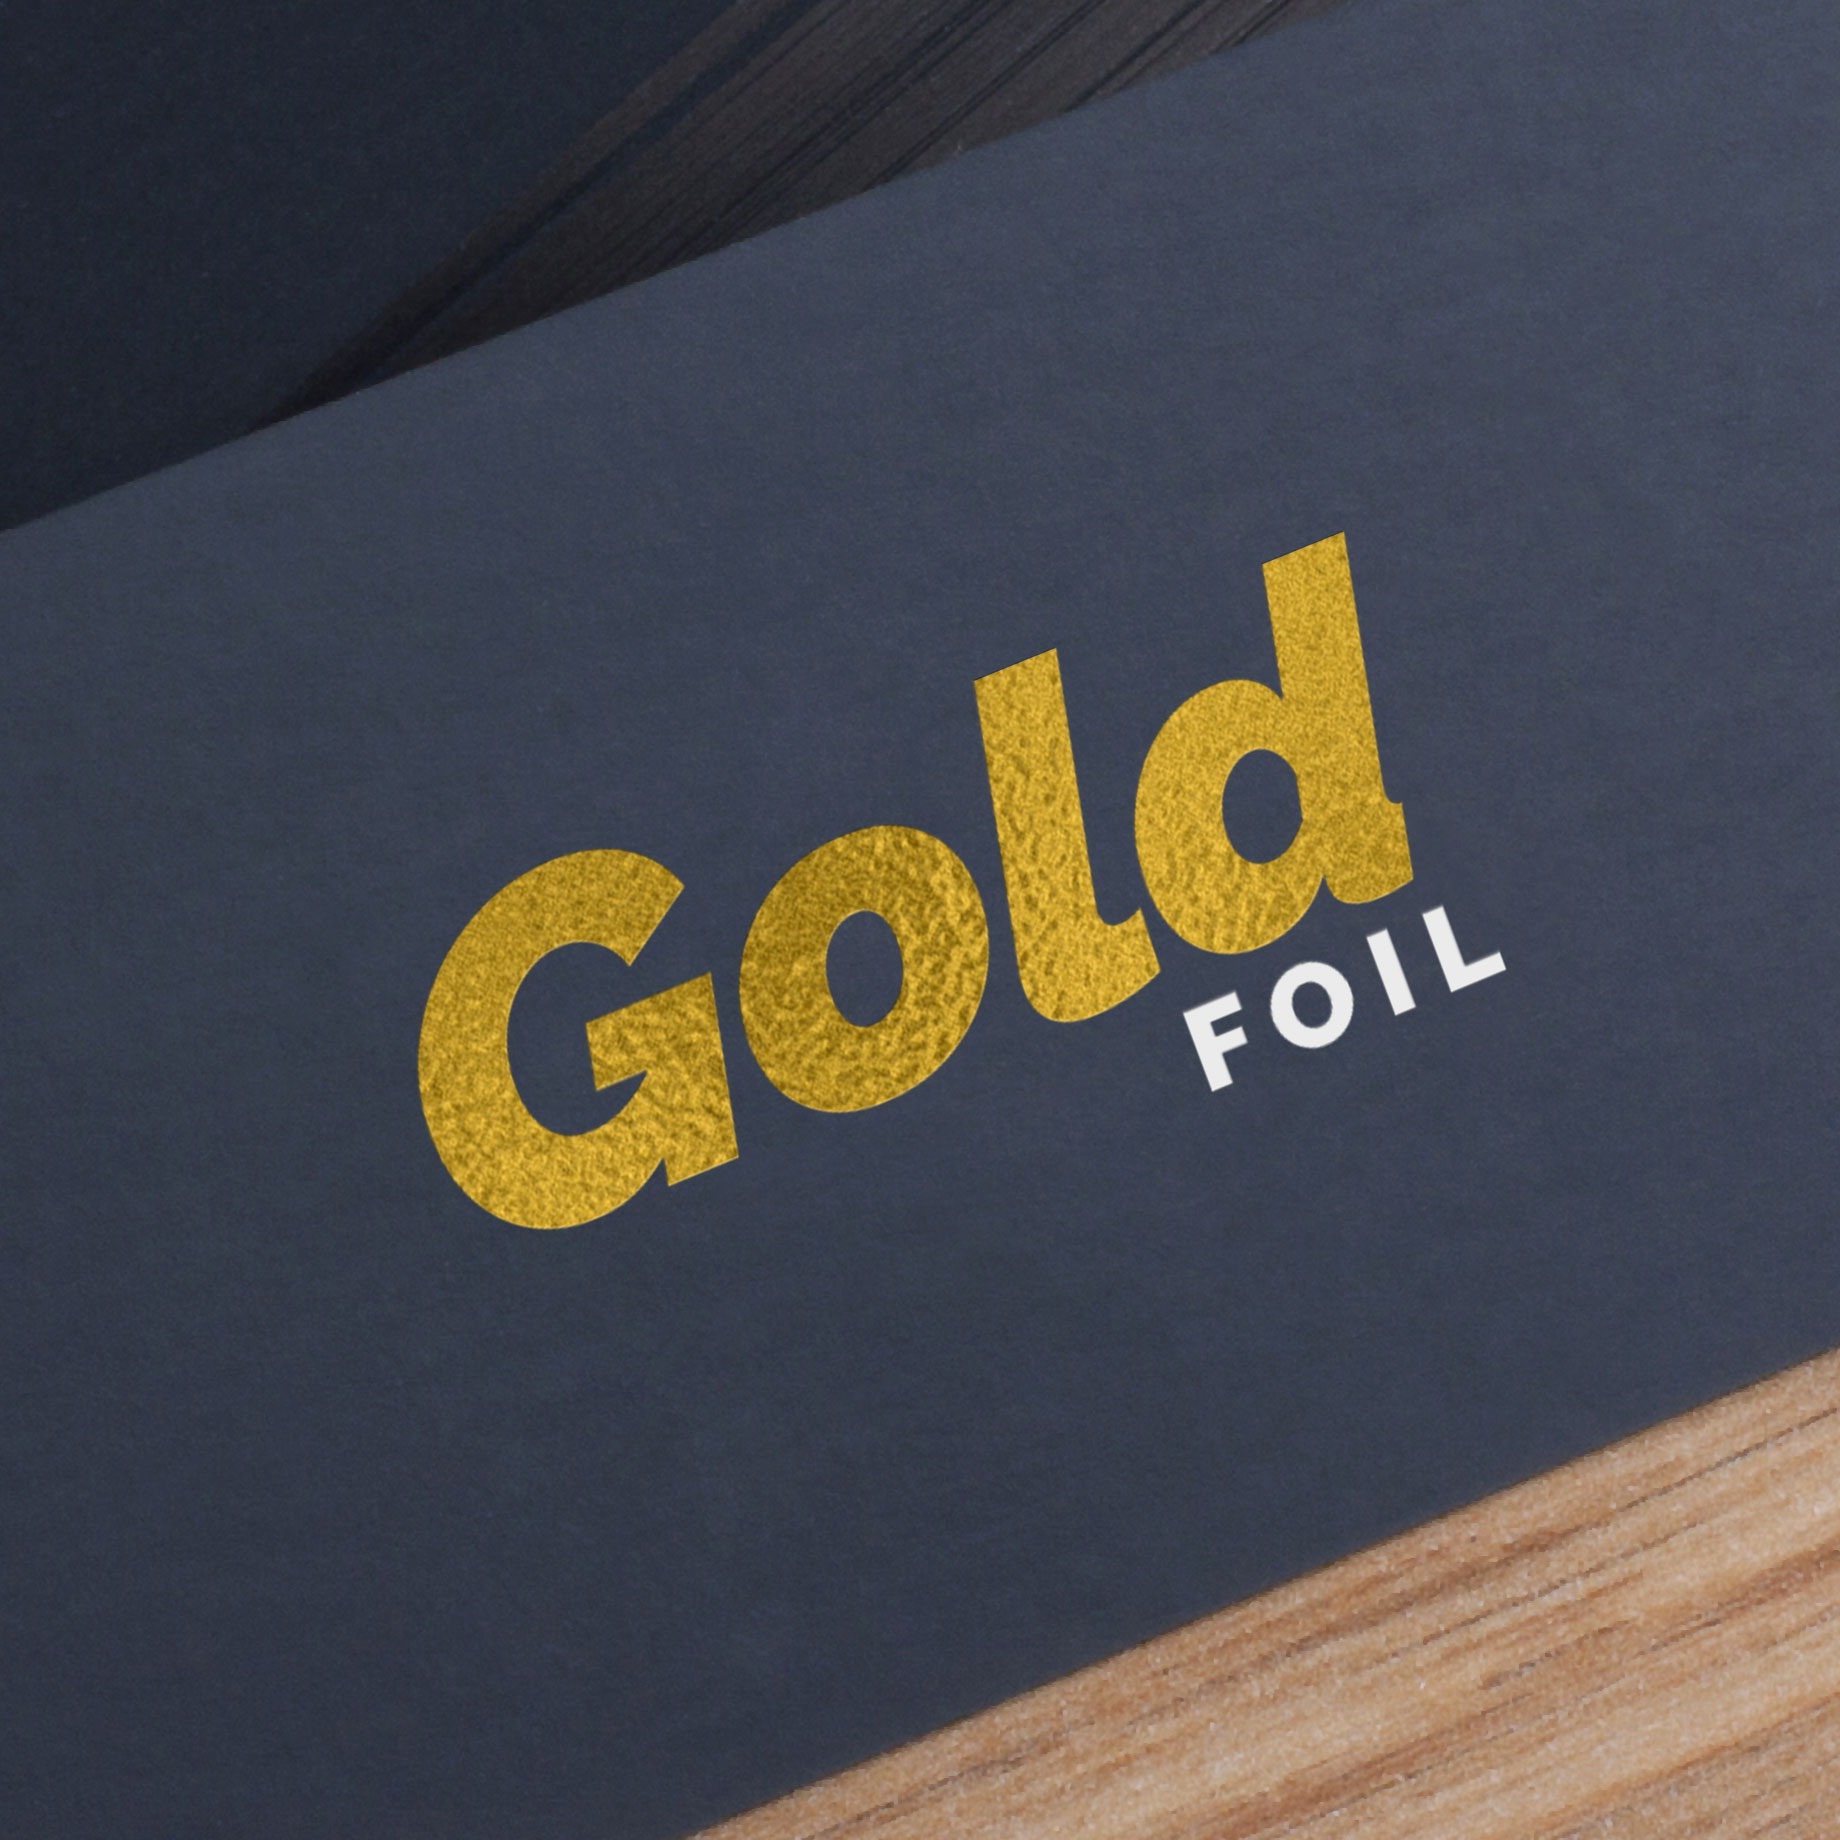 What are the guidelines for foil printing? - NextDayFlyers Help Center